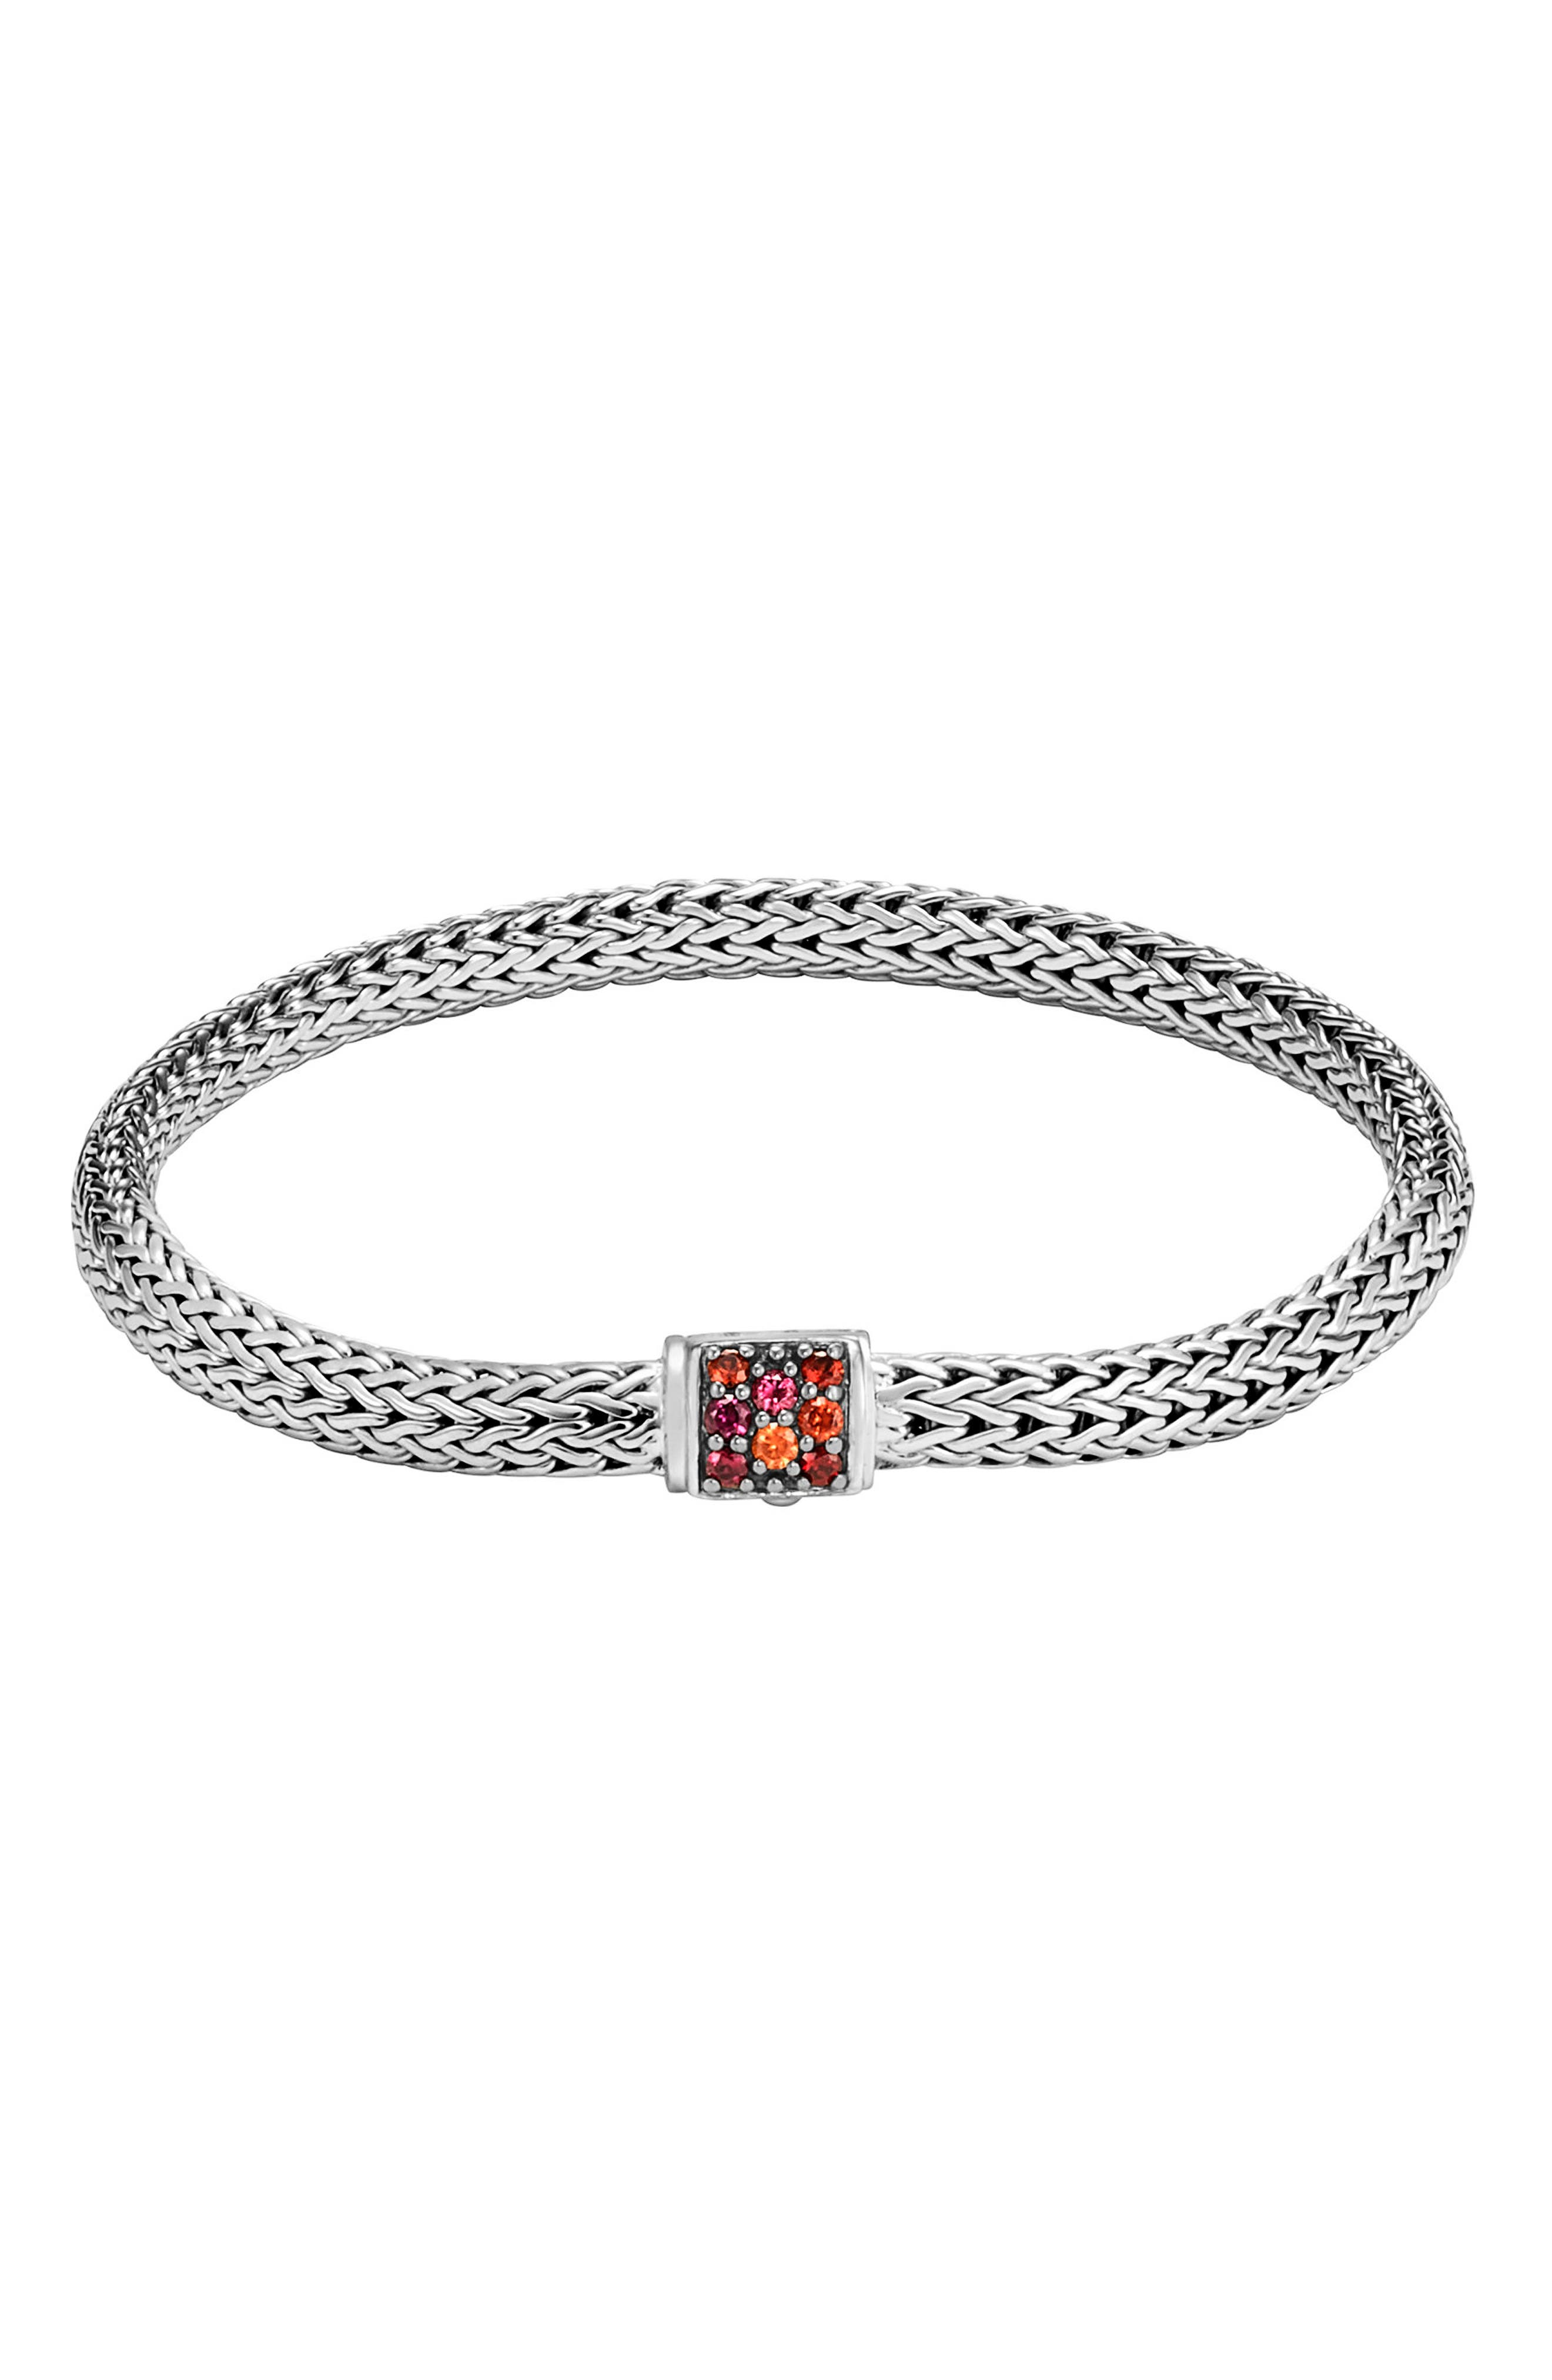 Classic Chain Extra Small Bracelet,                         Main,                         color, Silver/ Garnet